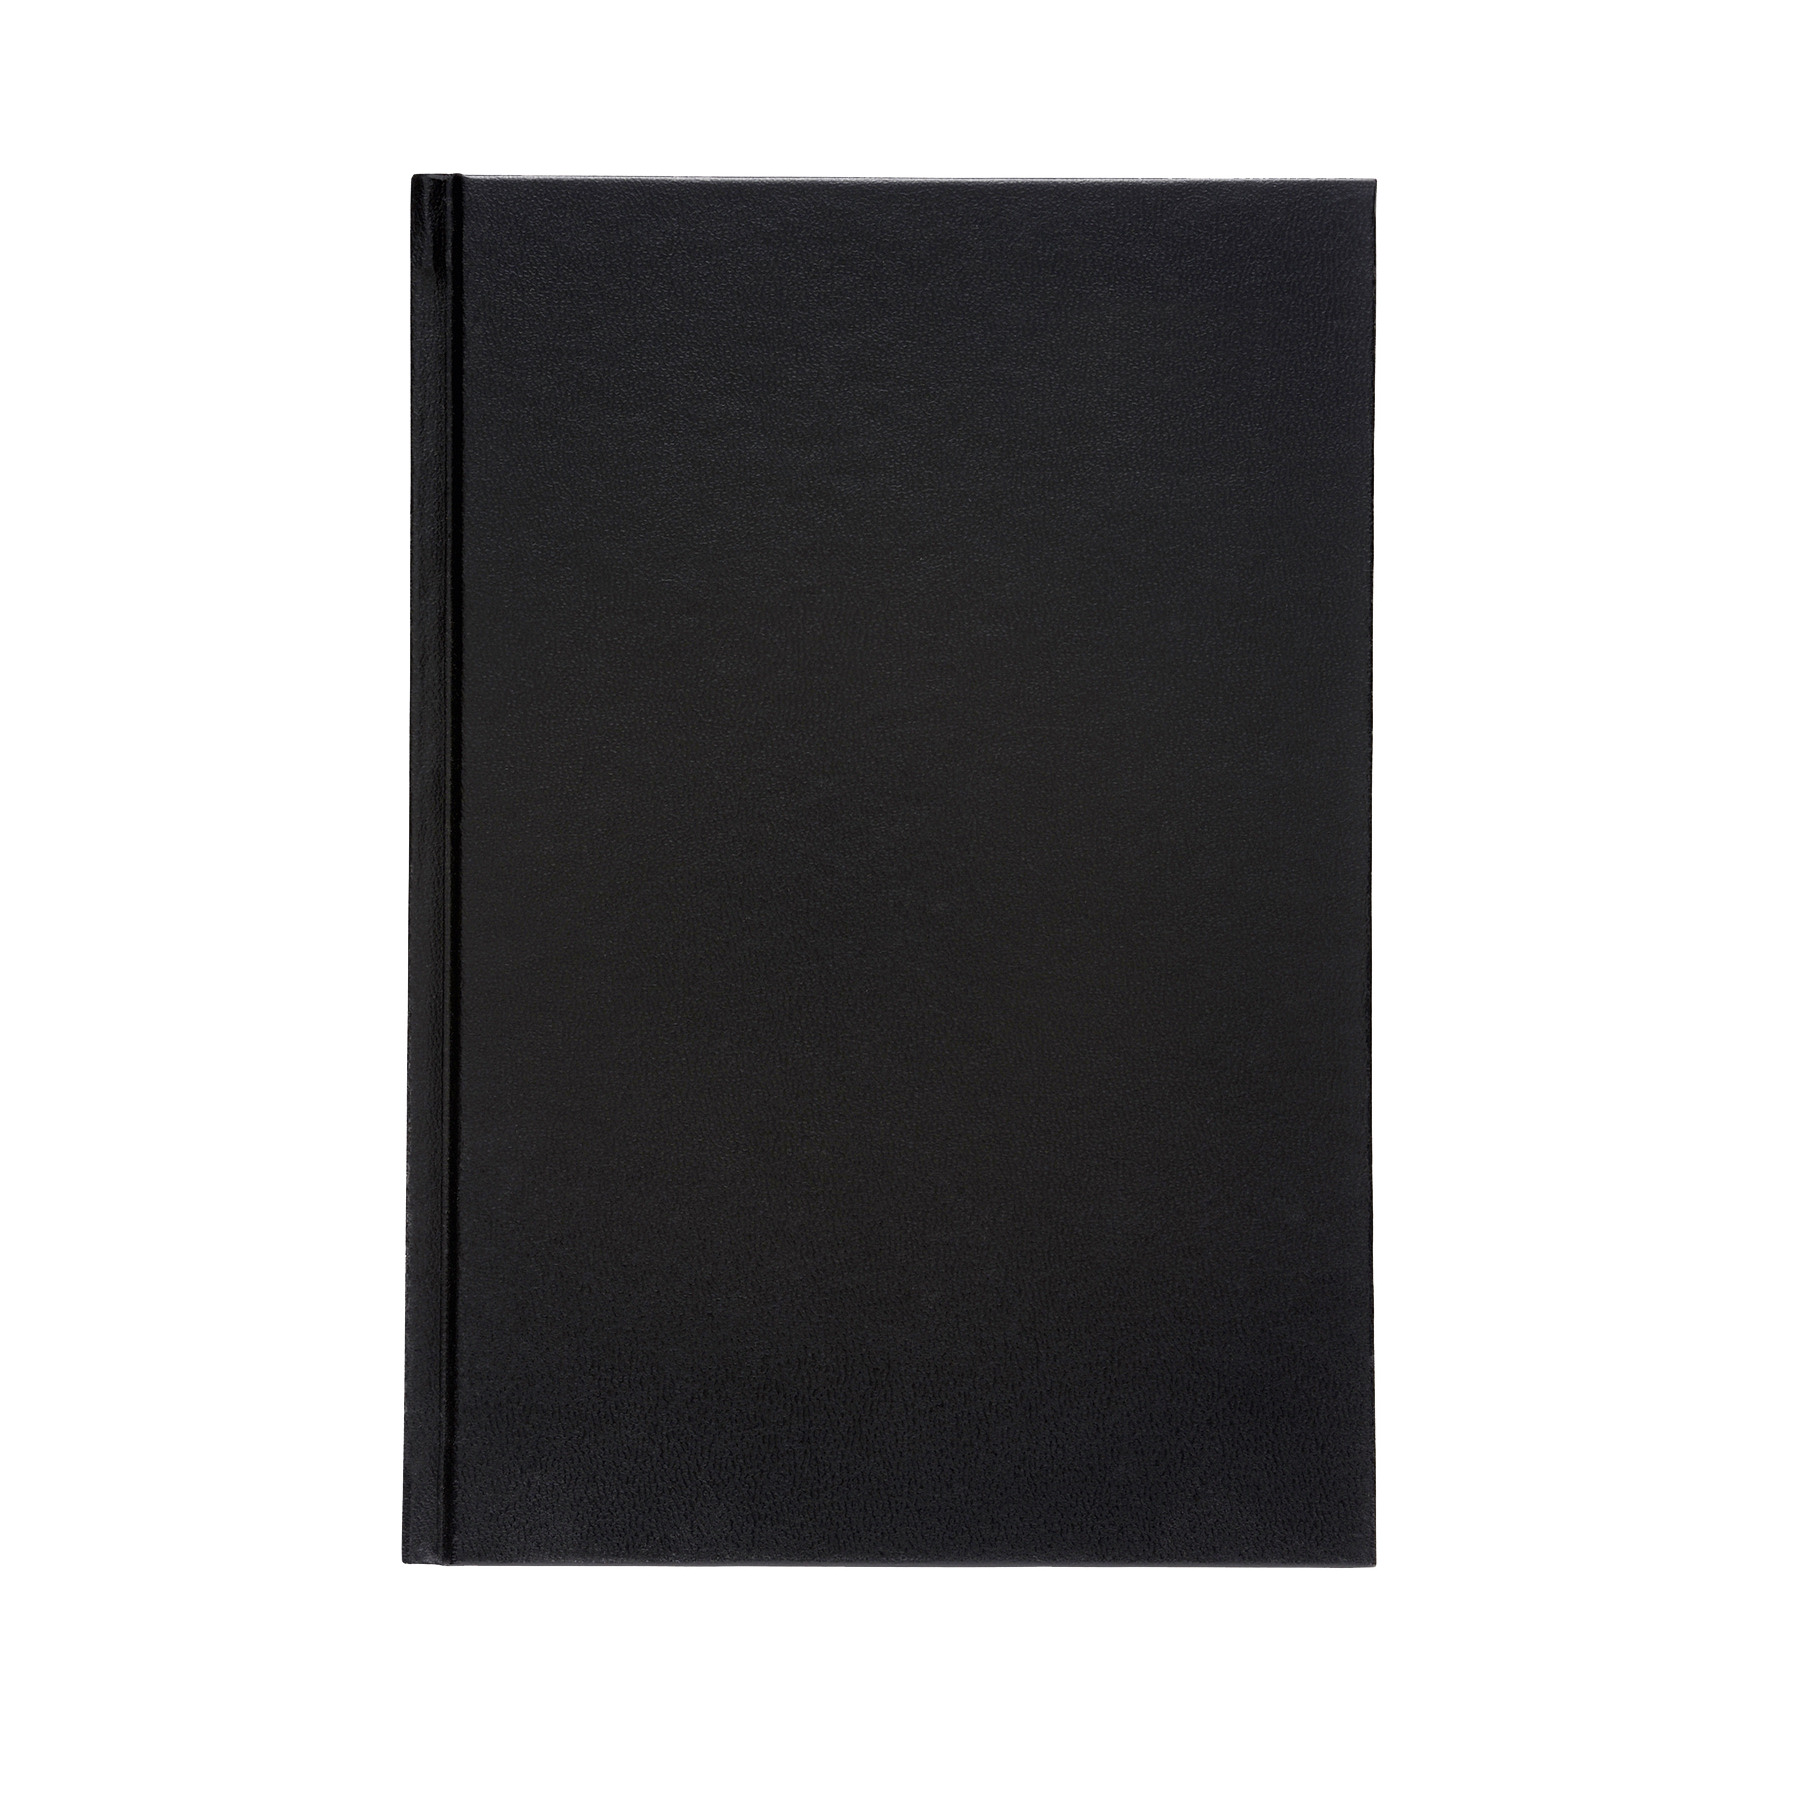 5 Star 2016- 2017 Academic Year Diary A4 Week to View Black